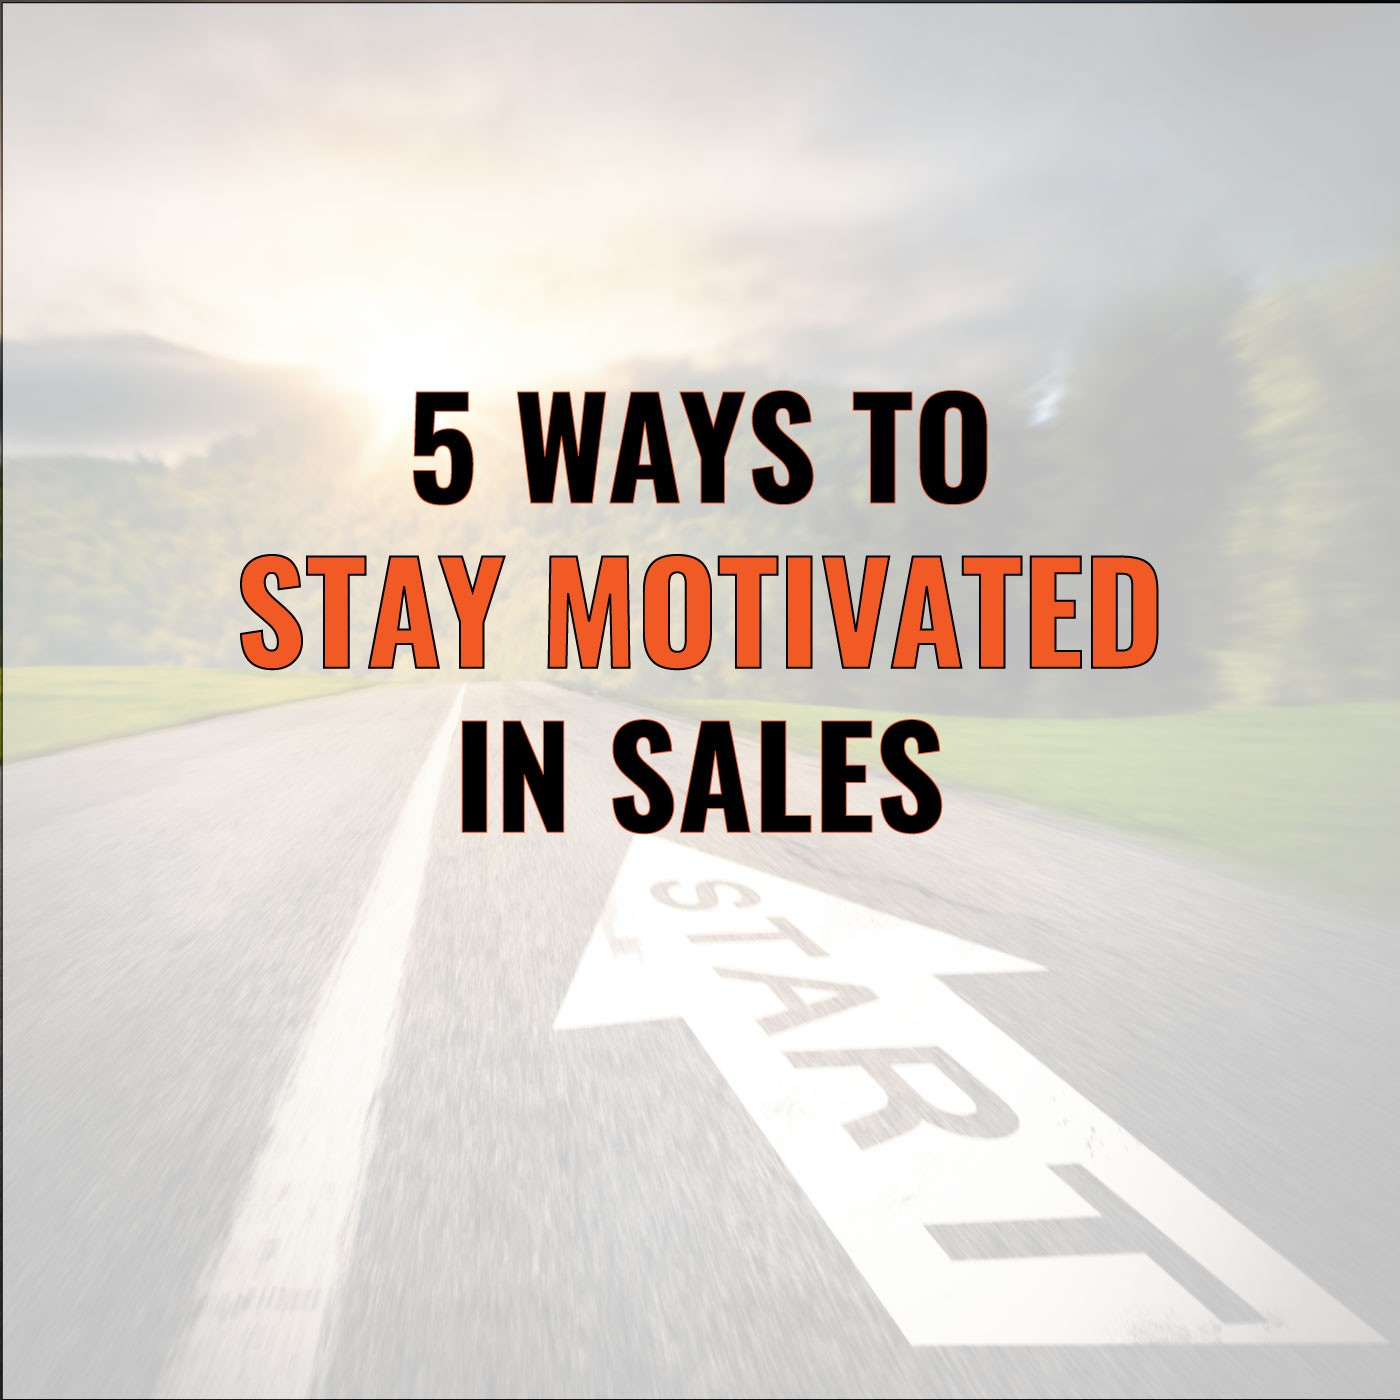 Brian Burns on 5 Ways to Stay Motivated in Sales